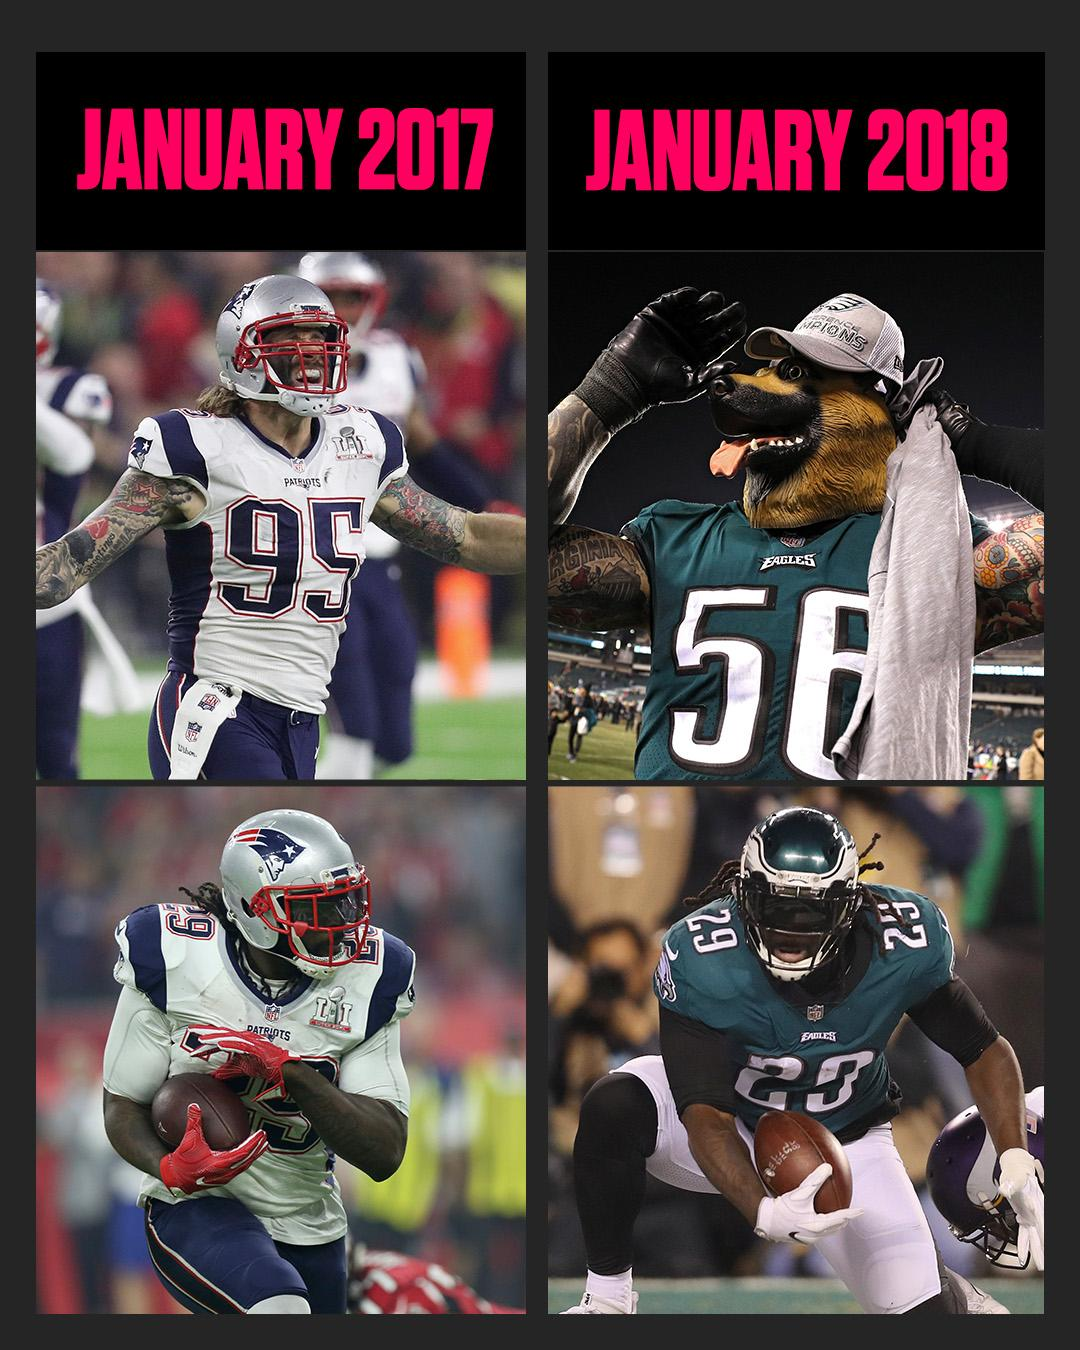 One year later, Chris Long and LeGarrette Blount will be competing for another Super Bowl … with a different team. https://t.co/fpvqYmxCOt